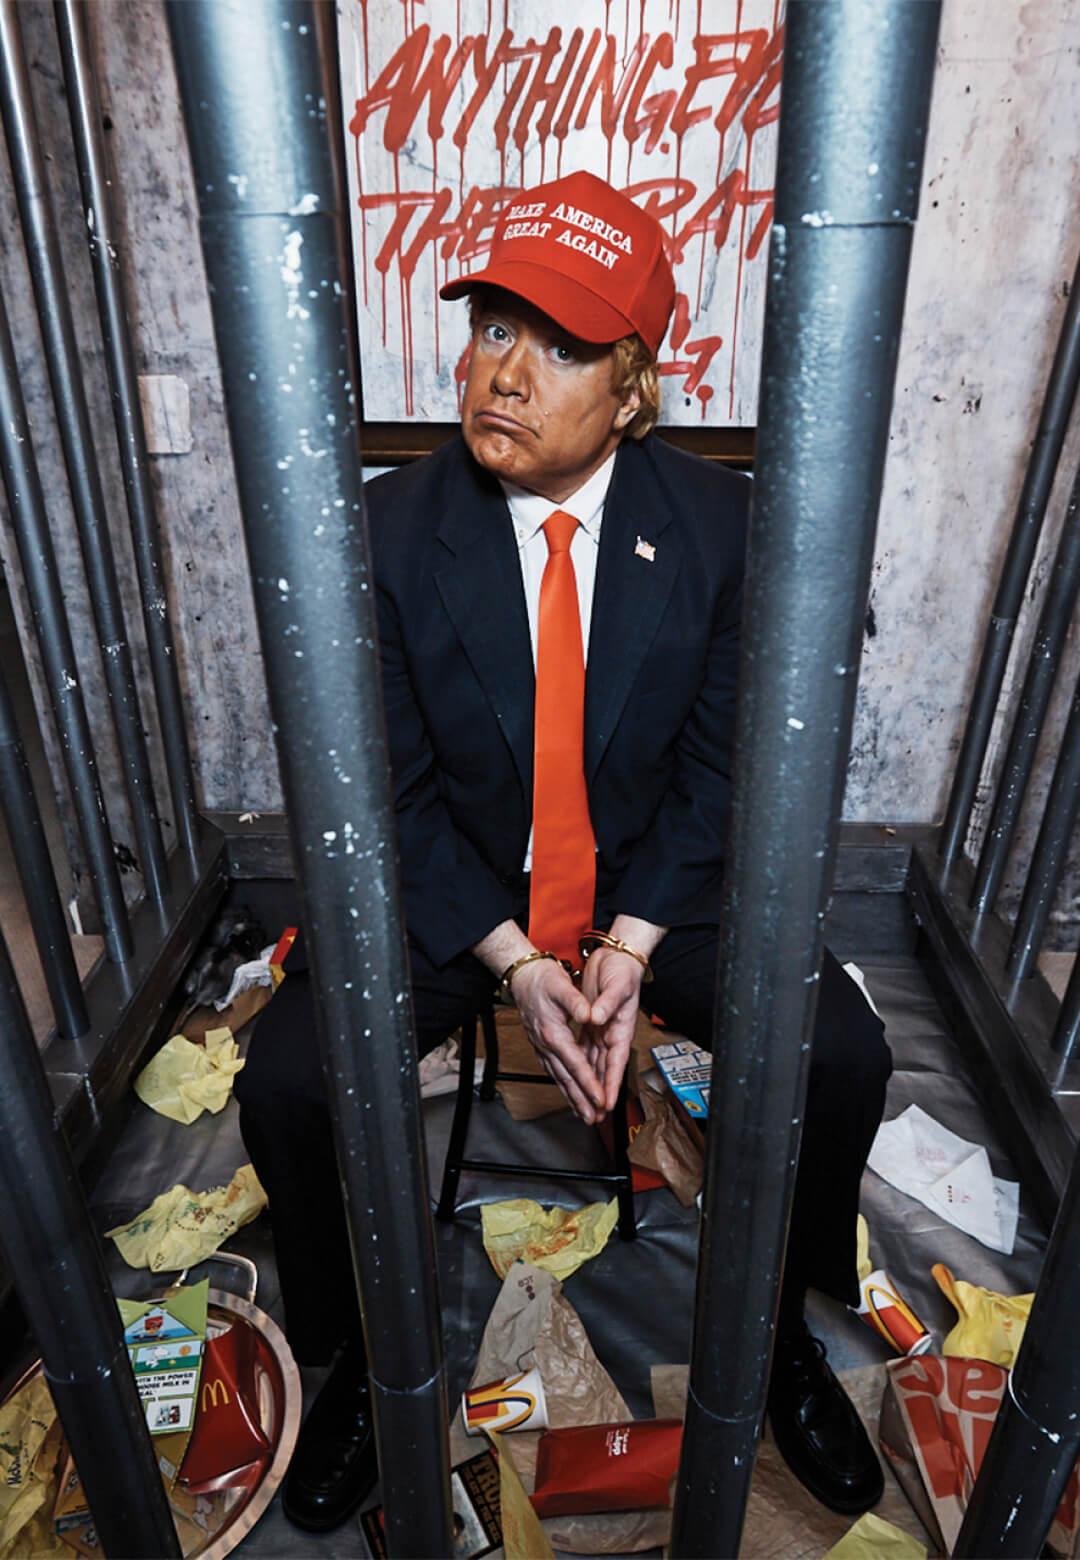 A Trump impersonator in a cell constructed by INDECLINE   The People's Prison   INDECLINE   STIRworld